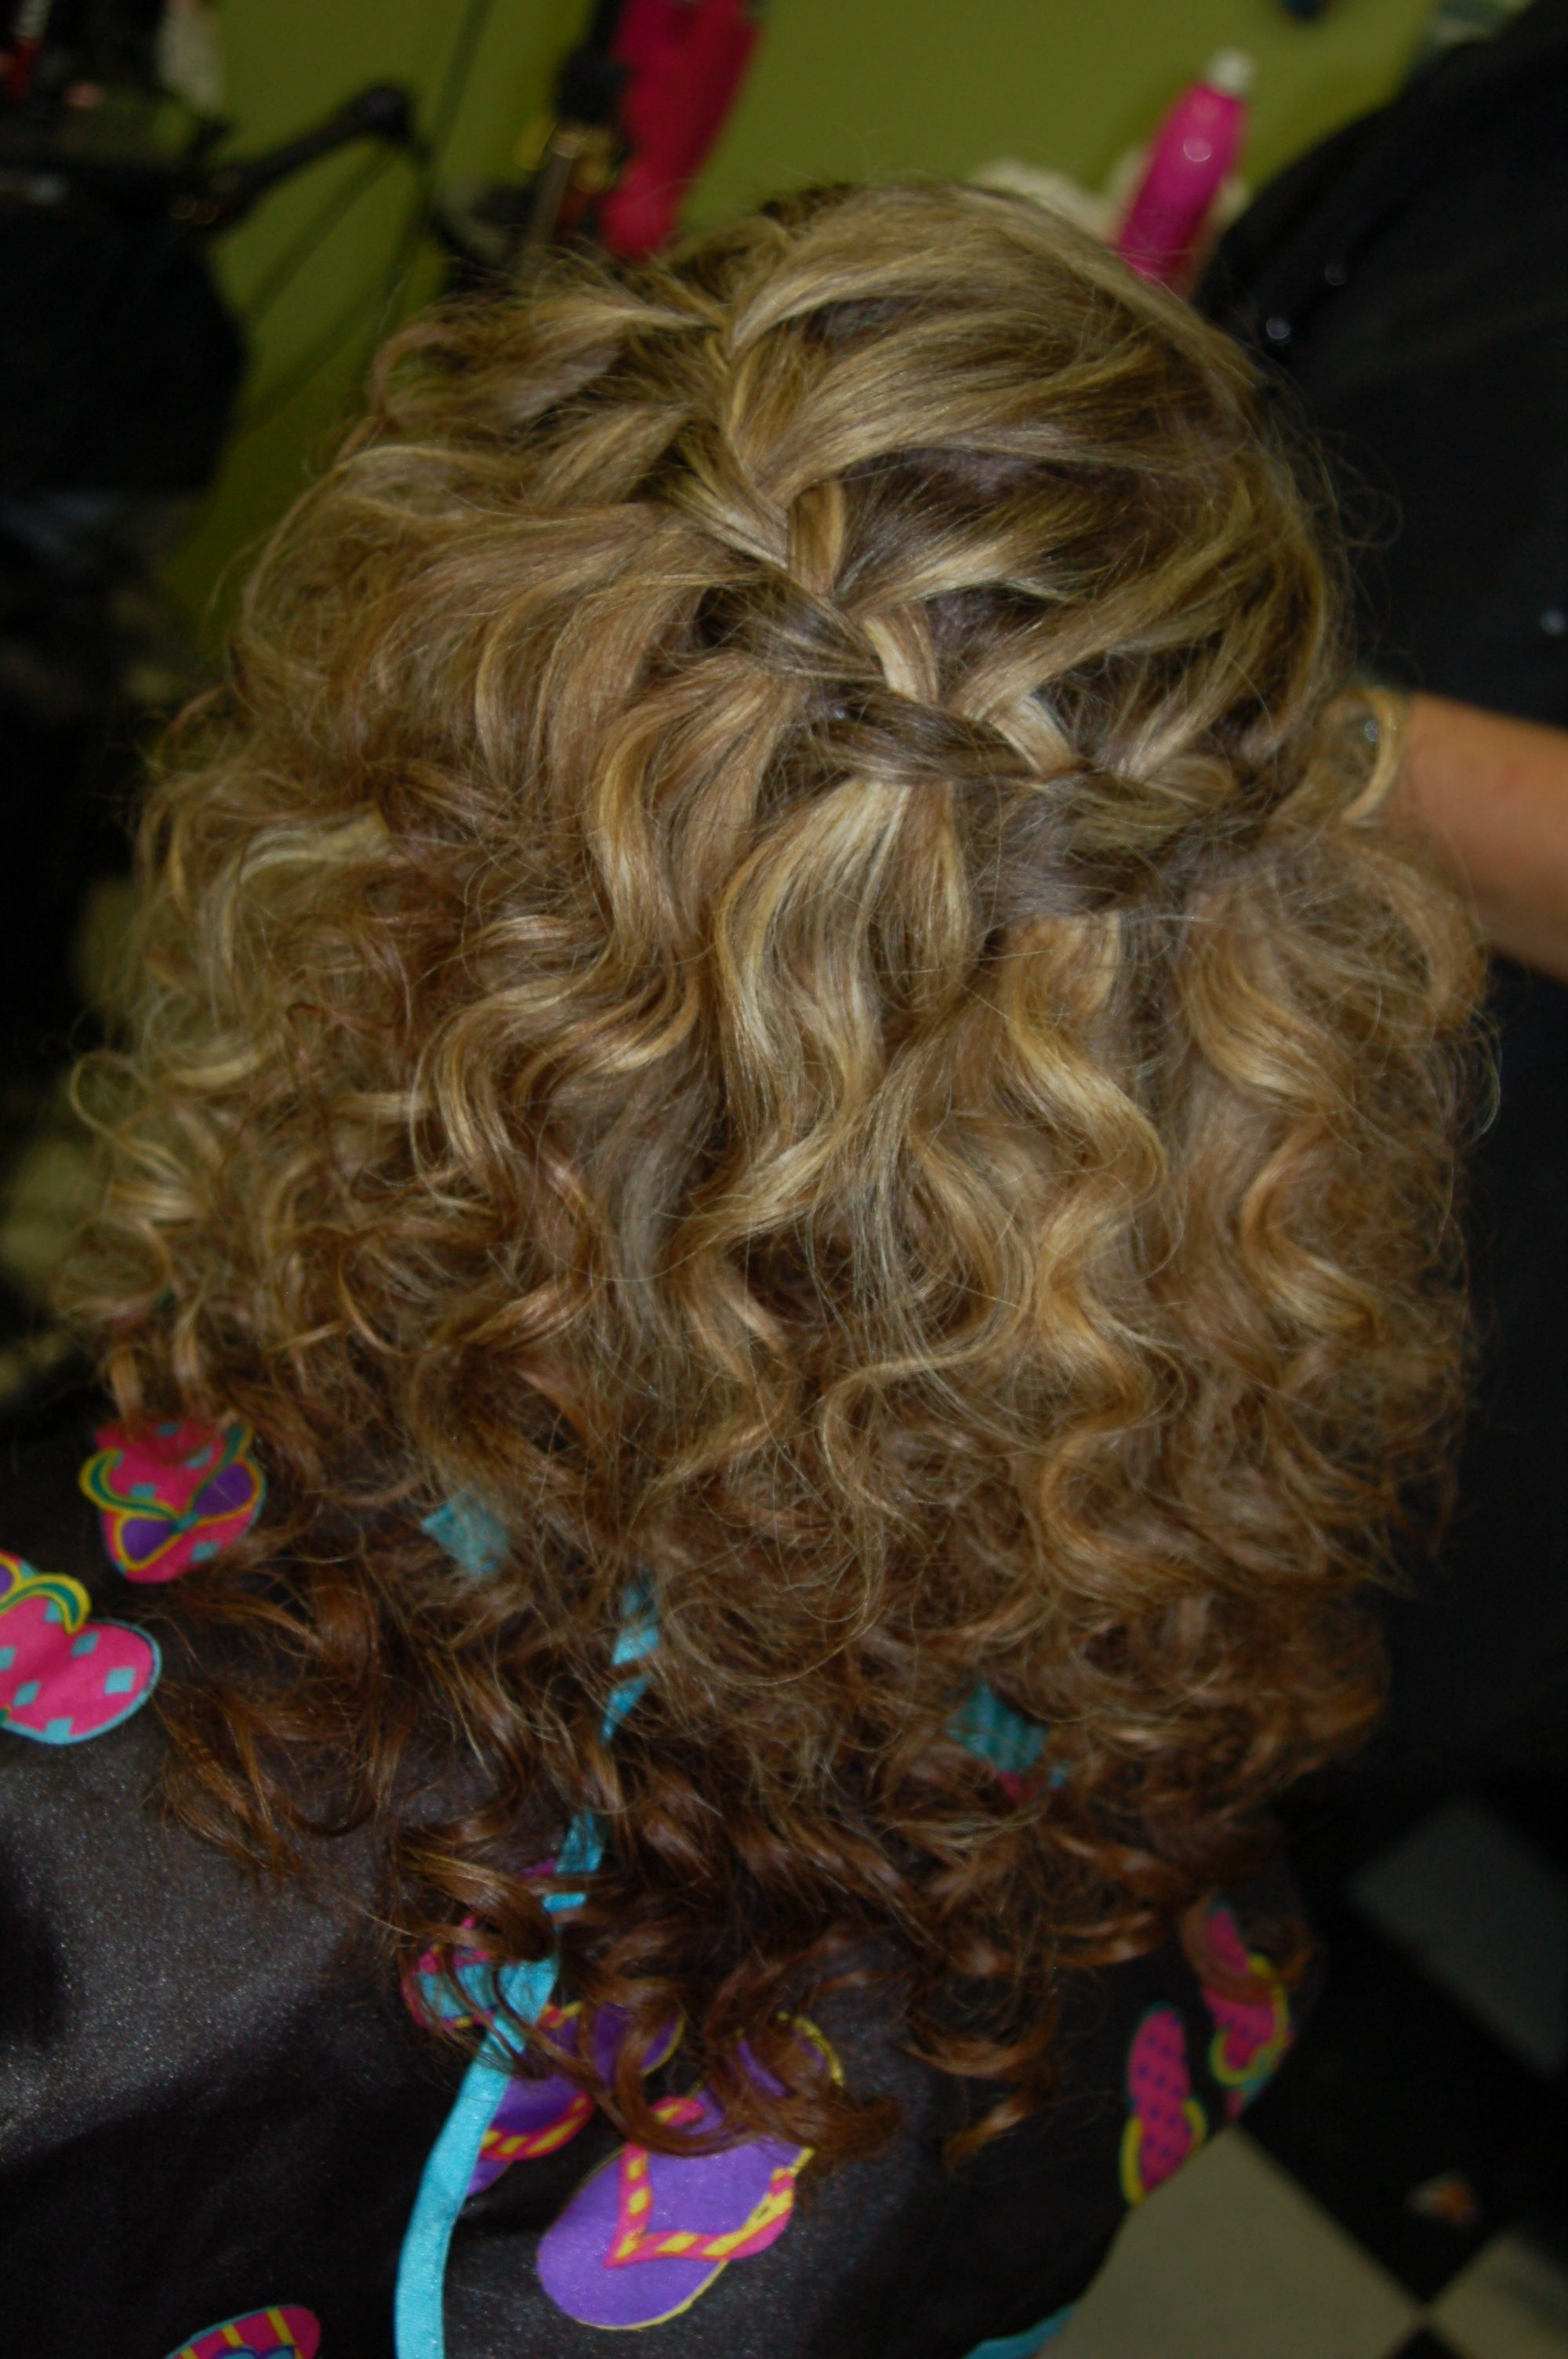 Bridal Hair Waterfall Braid With Spiral Curls By Robyn Lyons From Images Salon Covington Ga 10 19 2013 Hair Styles Spiral Curls Hair